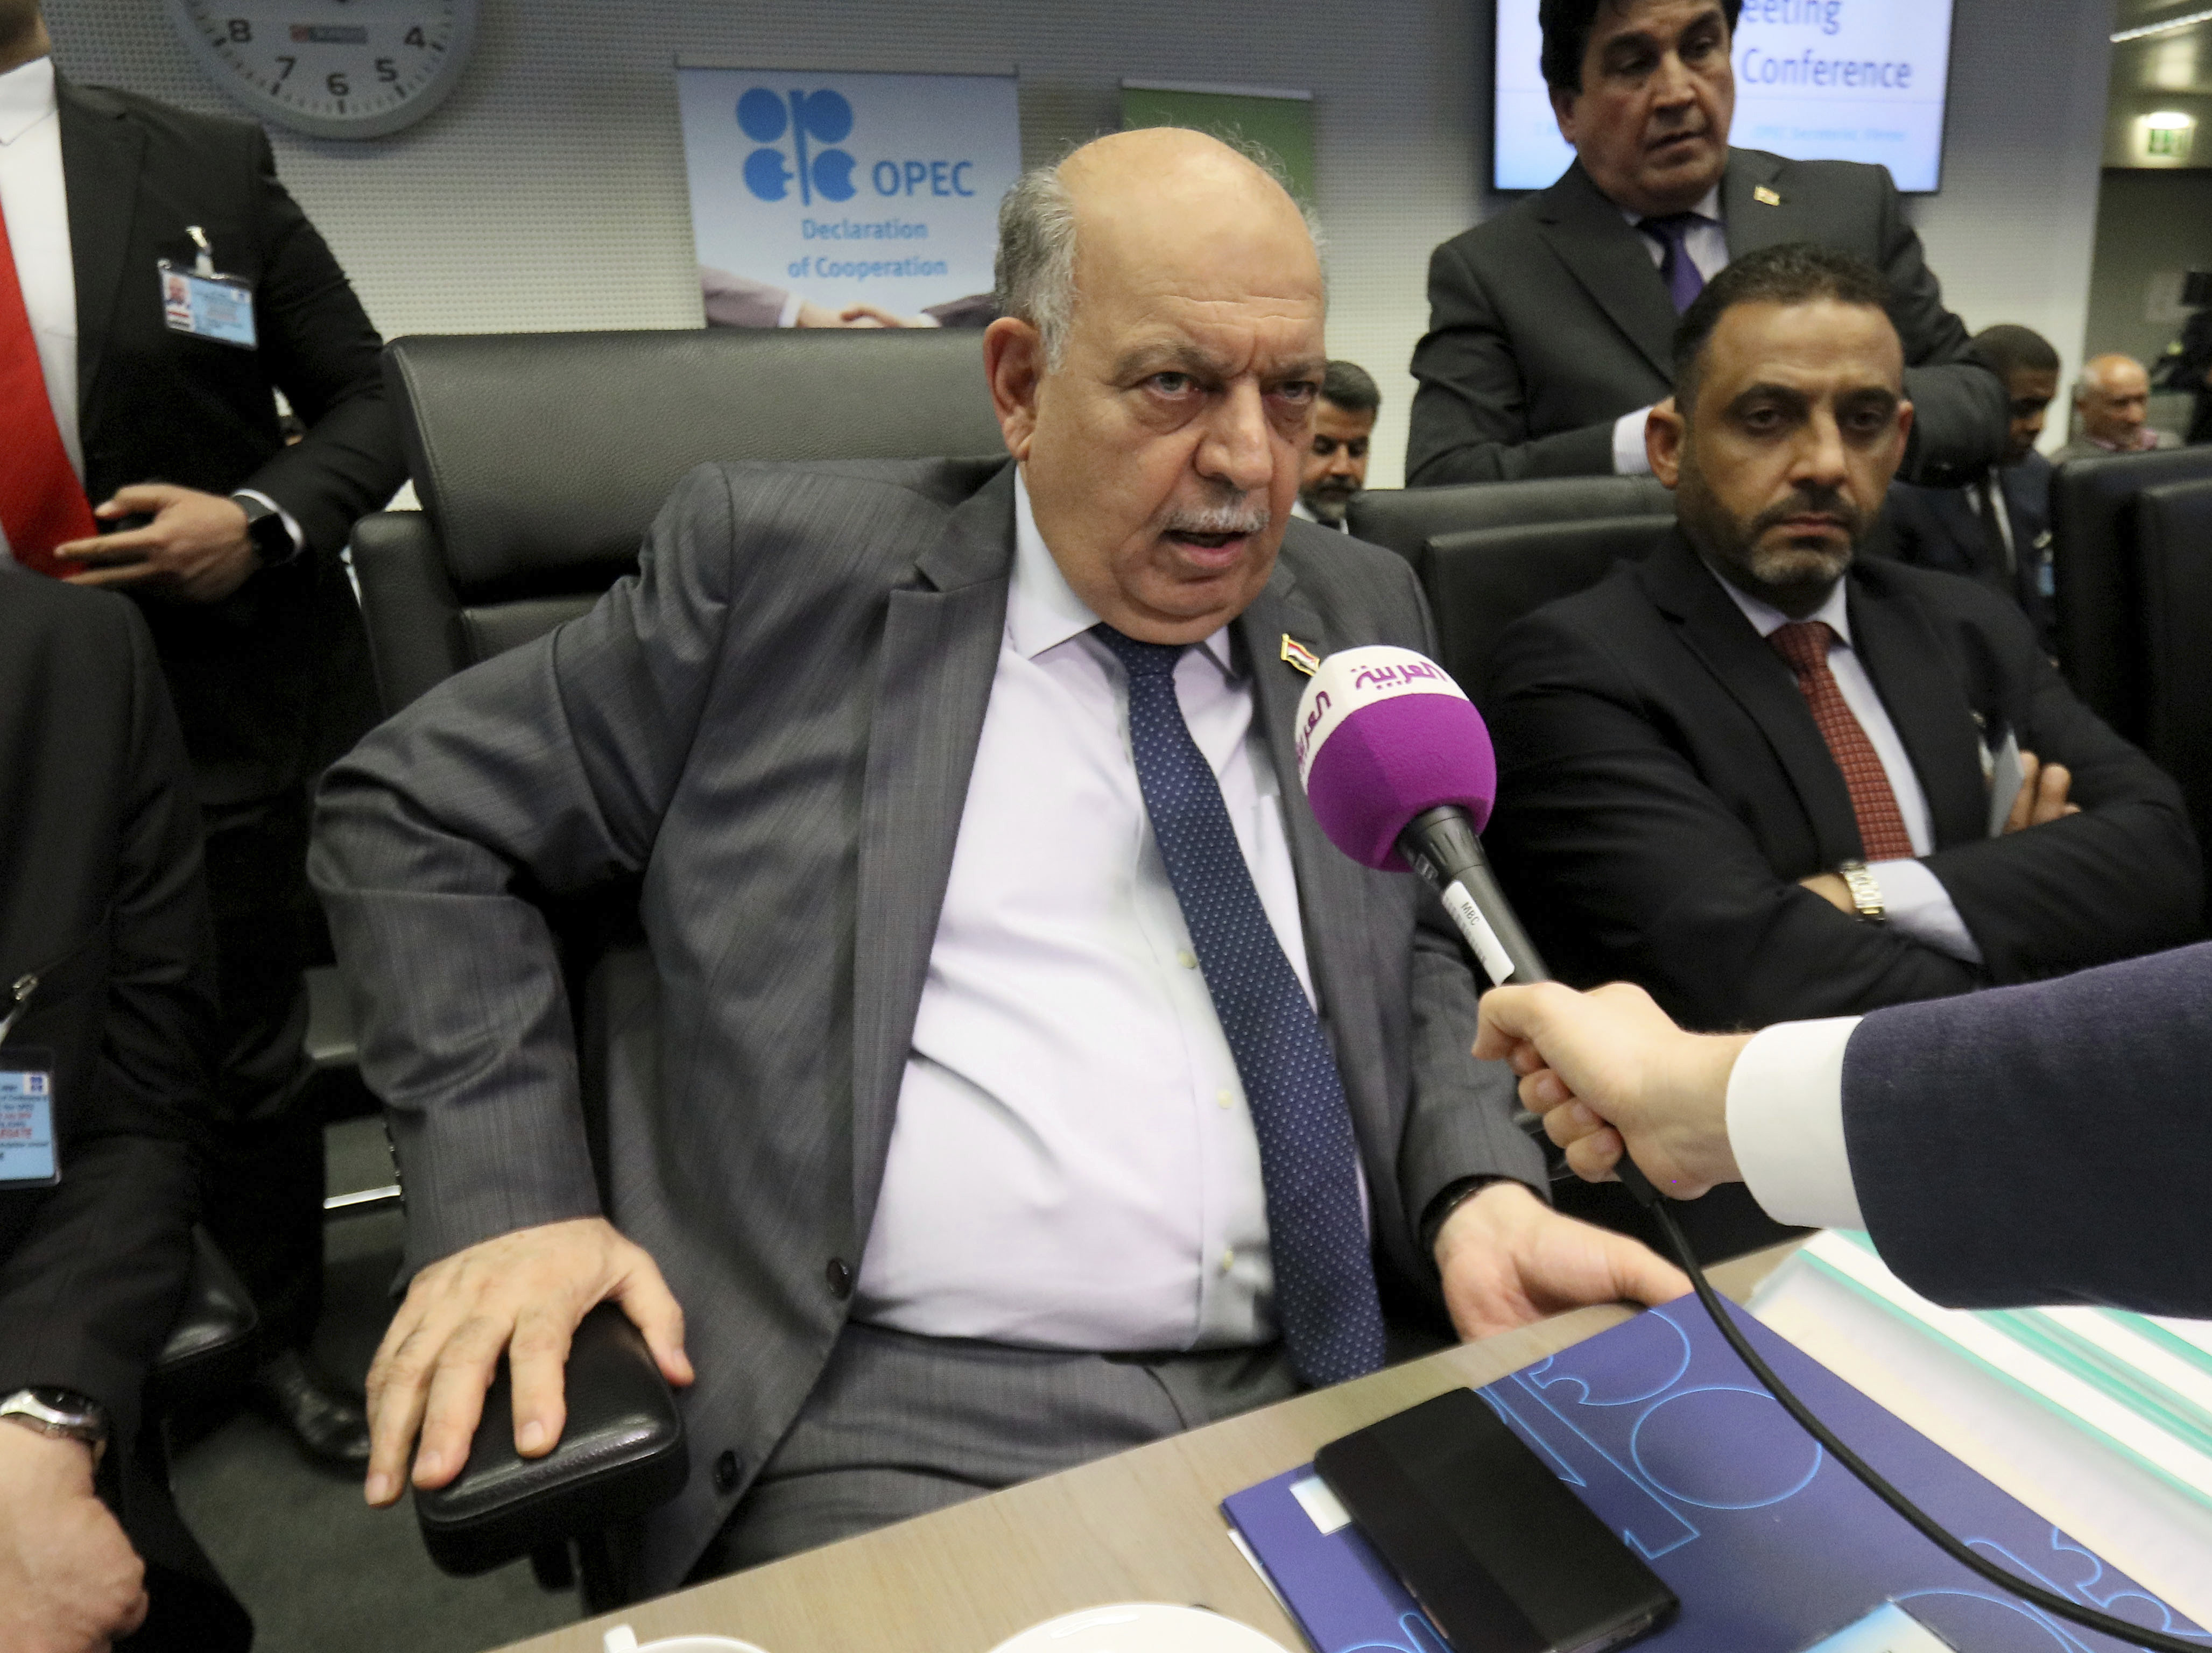 Iraqi Deputy Prime Minister for Energy Affairs and Oil Minister Thamir Ghadhban speaks prior to the start of an OPEC meeting in Vienna, Austria, July 1. (AP Photo/Ronald Zak)